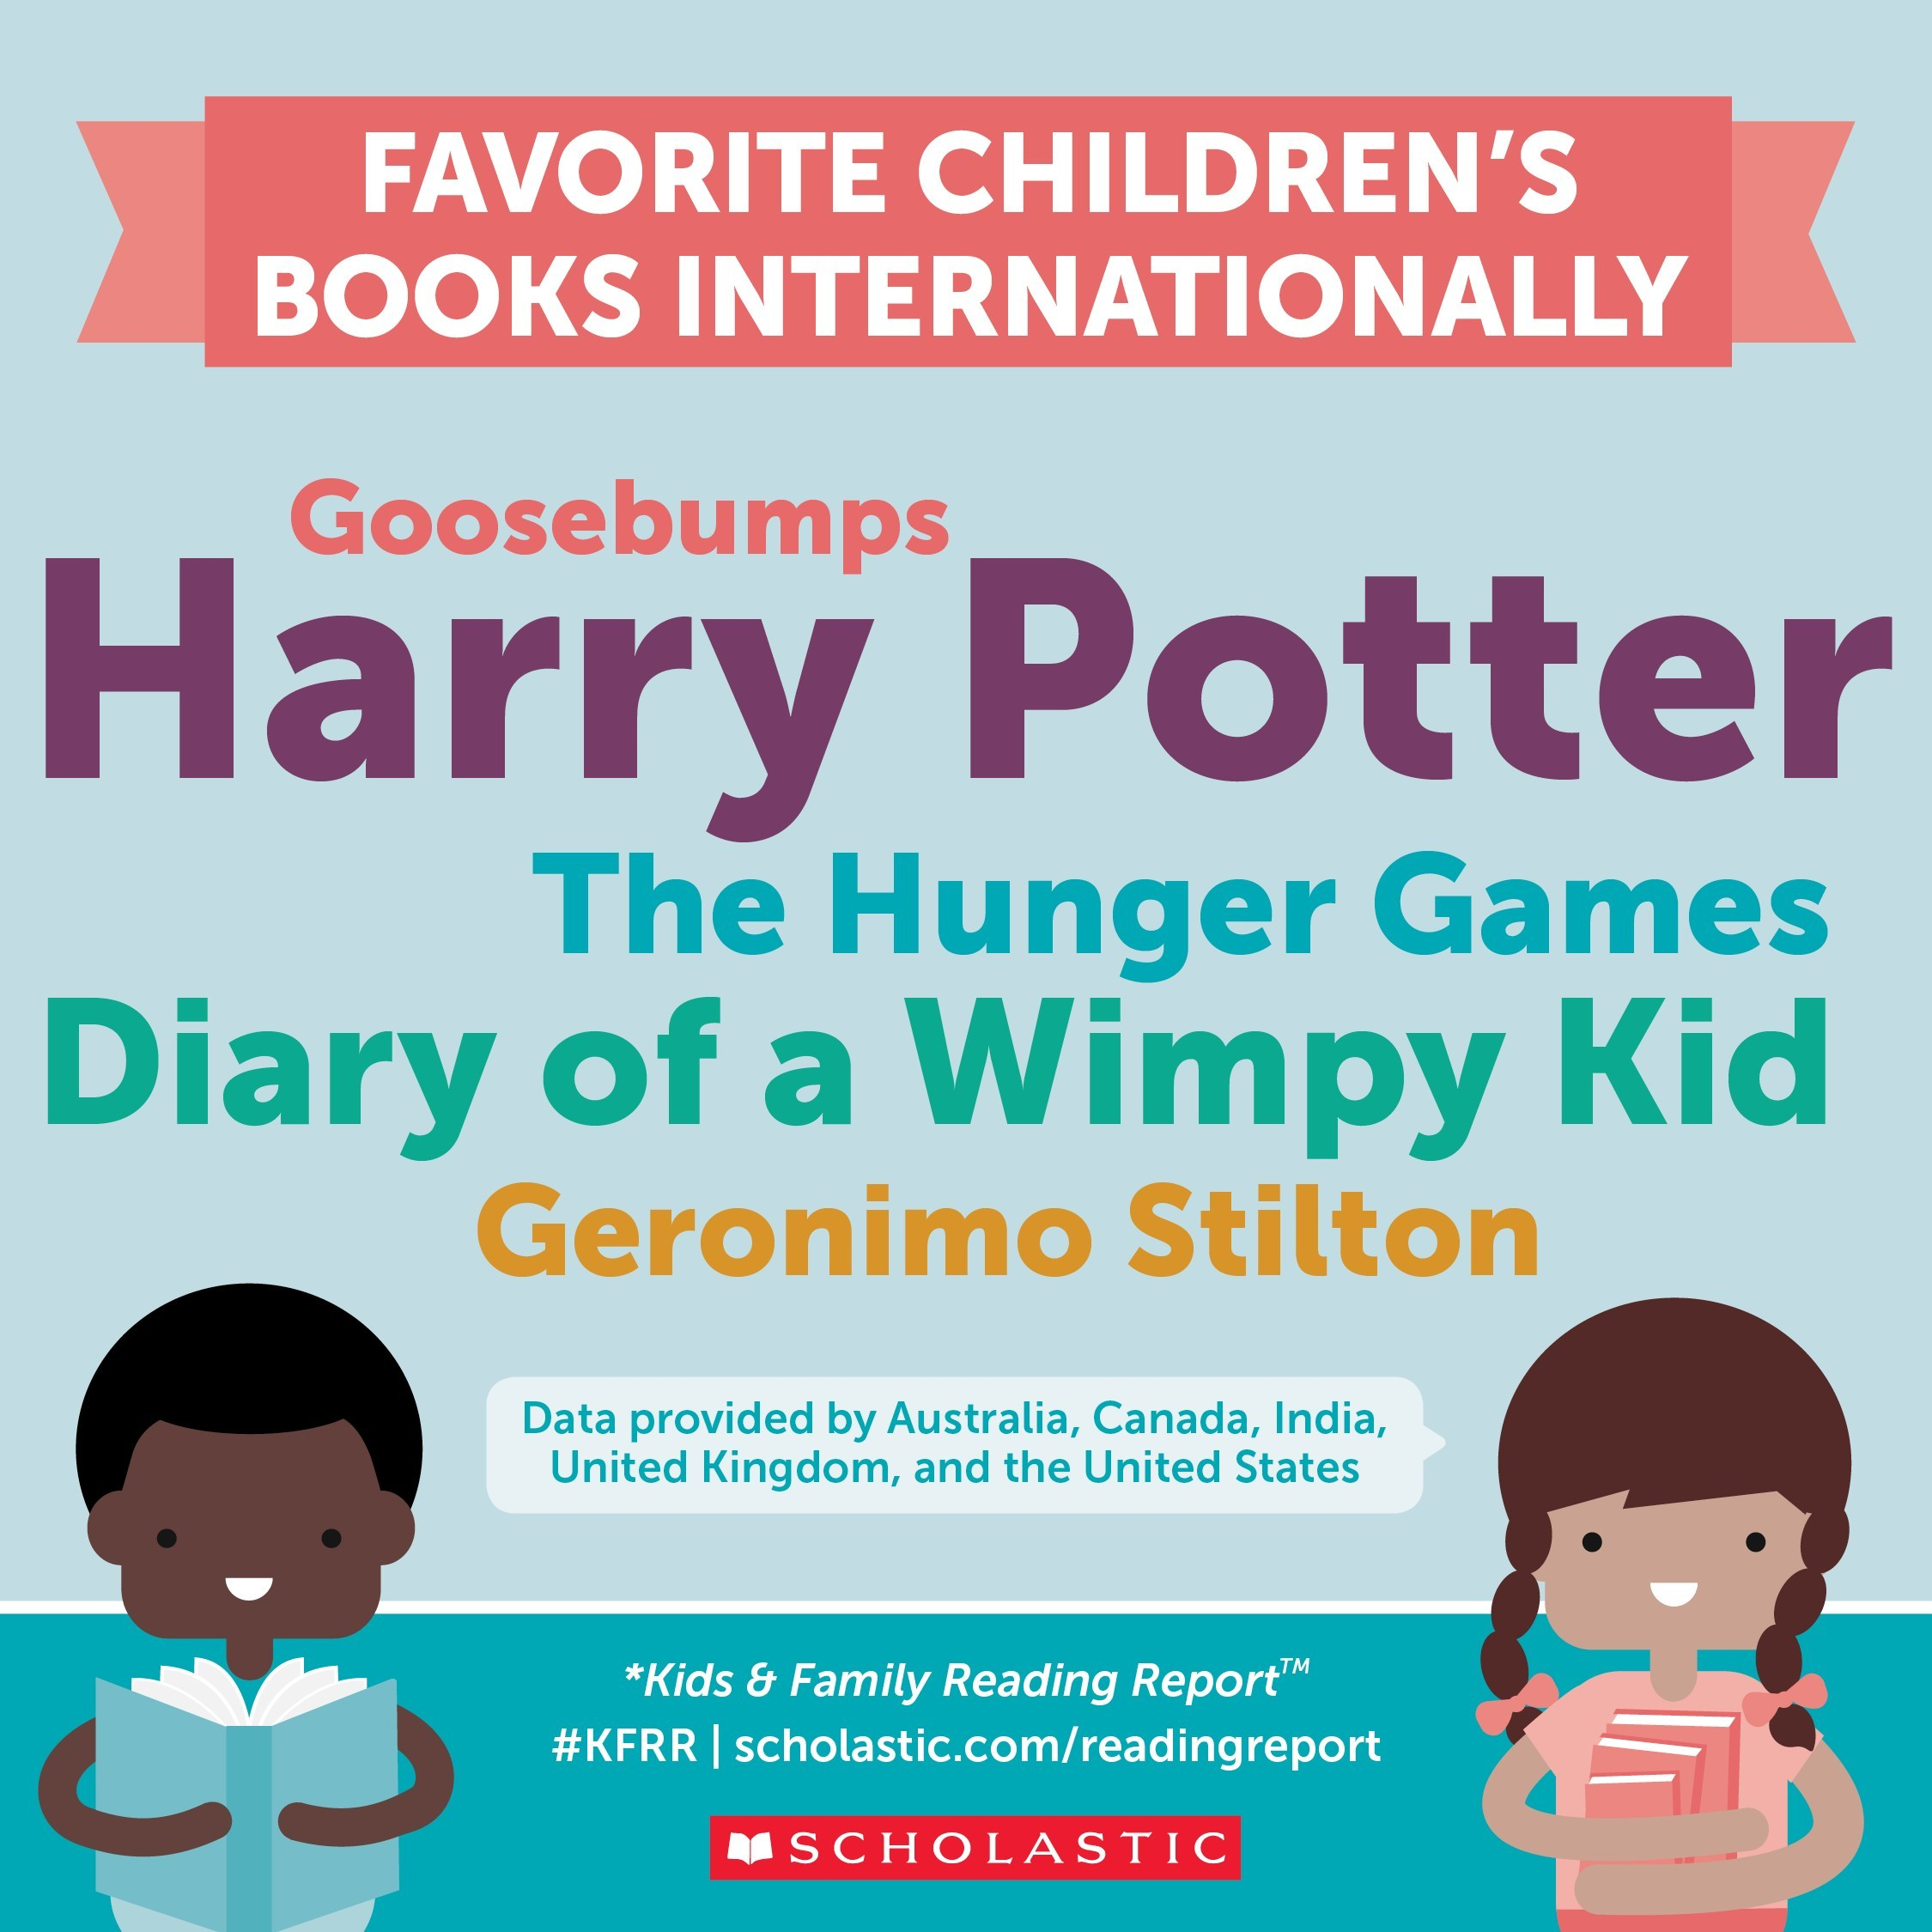 """""""Favorite children's books internationally"""" according to data from the Scholastic Kids & Family Reading Report™."""